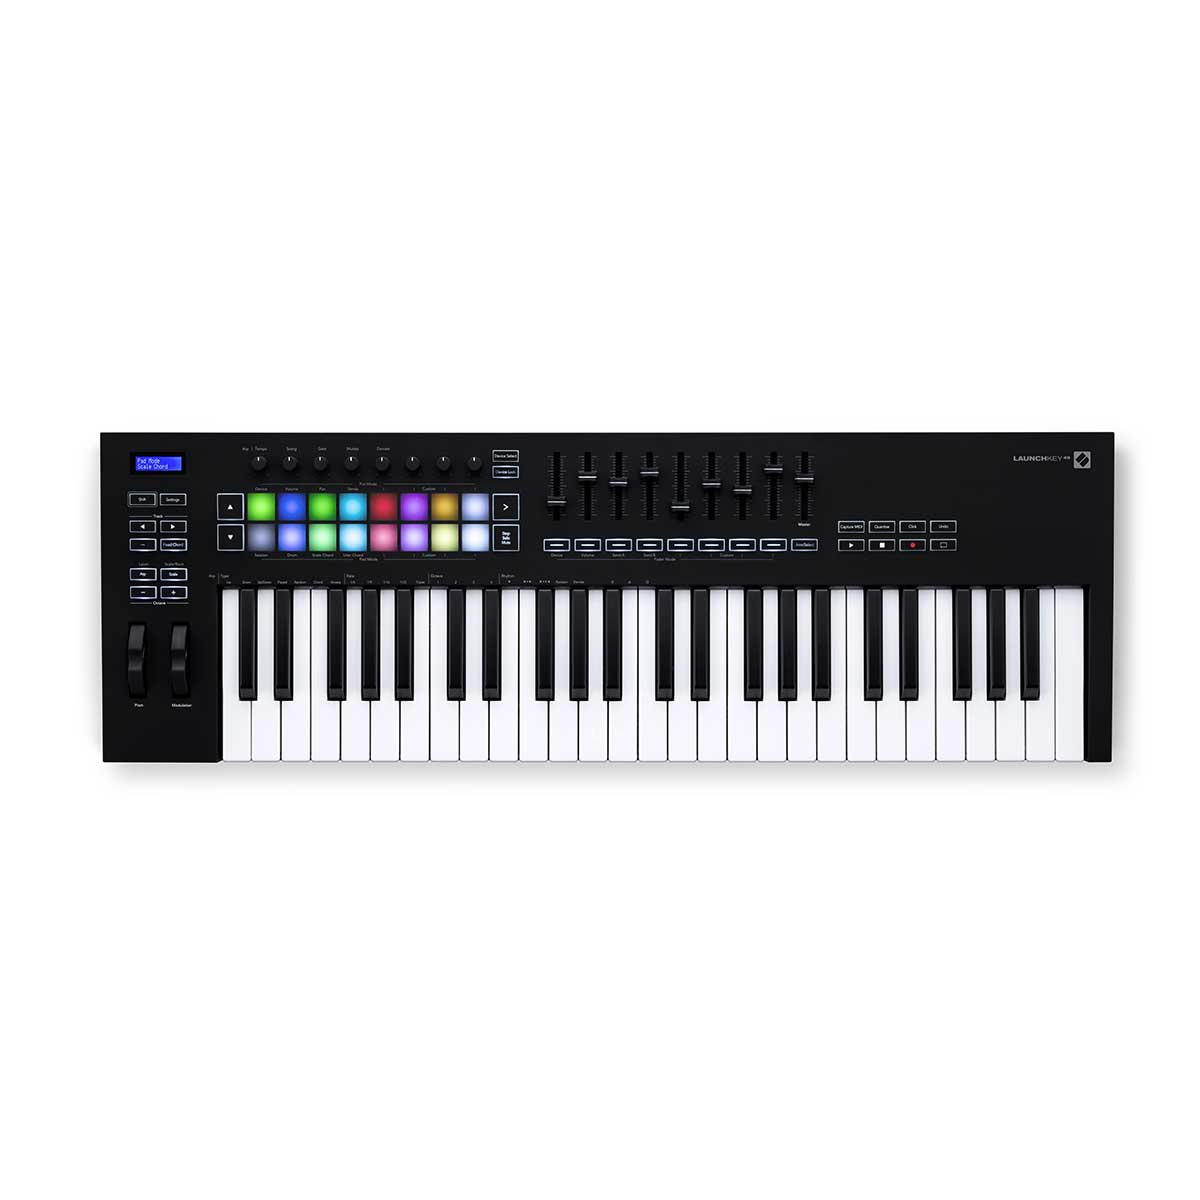 Novation Launchkey 49 MK3 49-Note Keyboard Controller